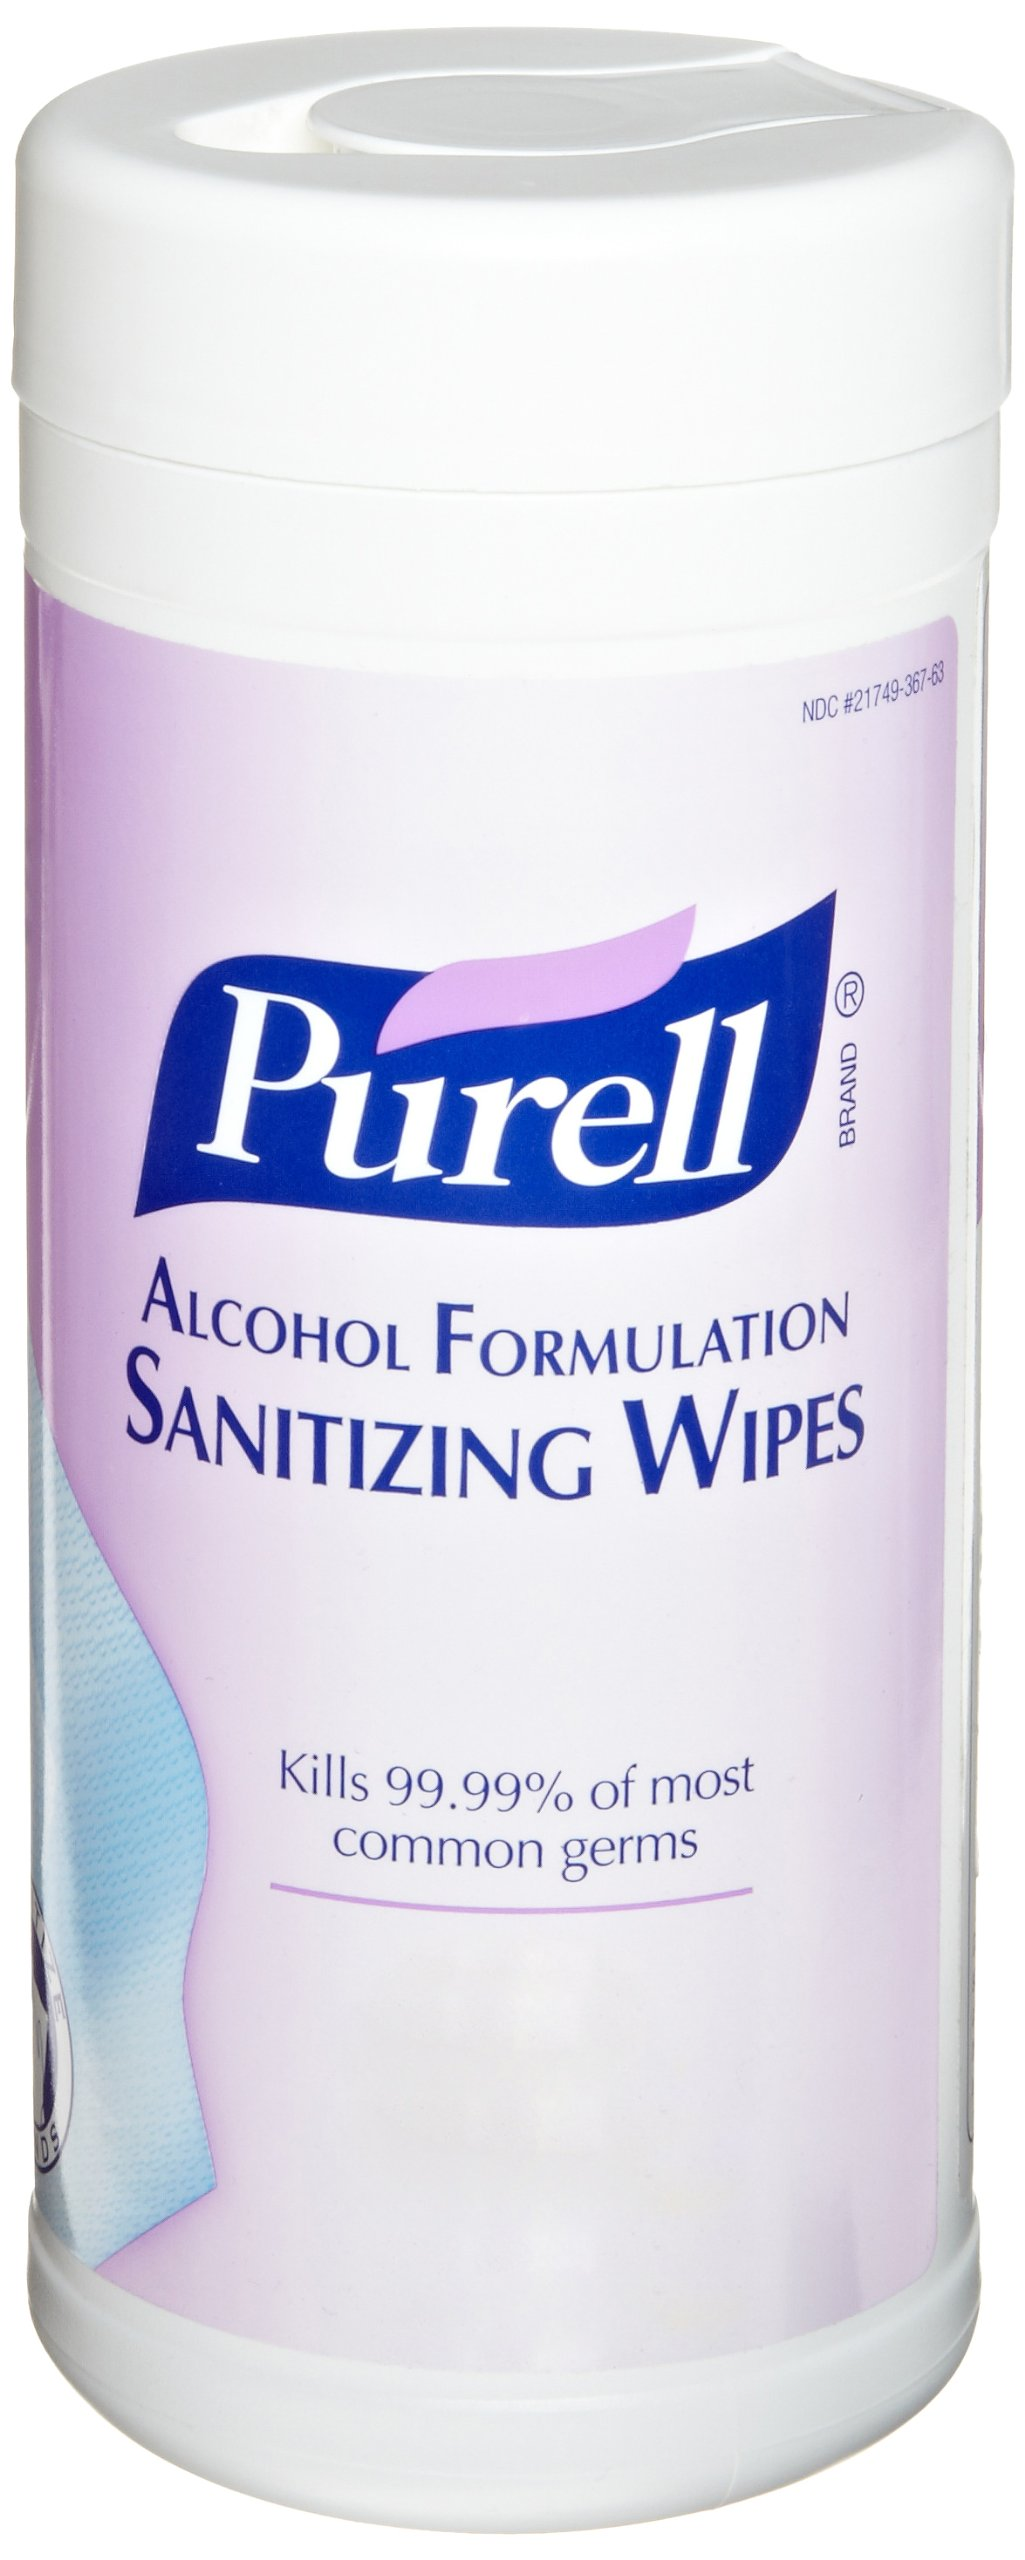 PURELL Hand Sanitizer Wipes Alcohol Formula, Fragrance Free, 80 Count Durable Non-Linting Wipes Canisters (Case of 12) - 9030-12